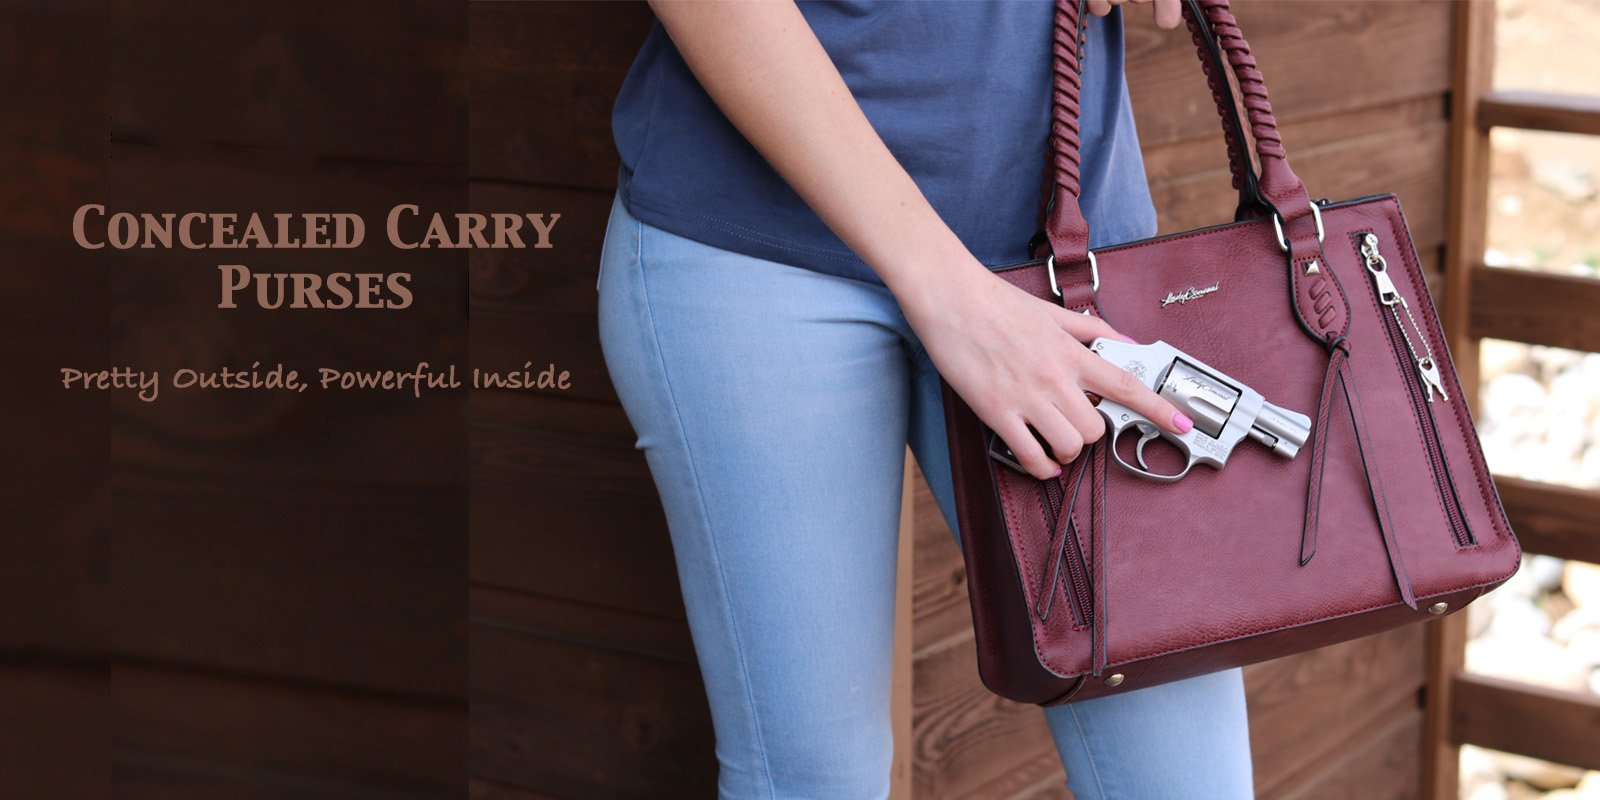 Concealed Carry Purse Collections